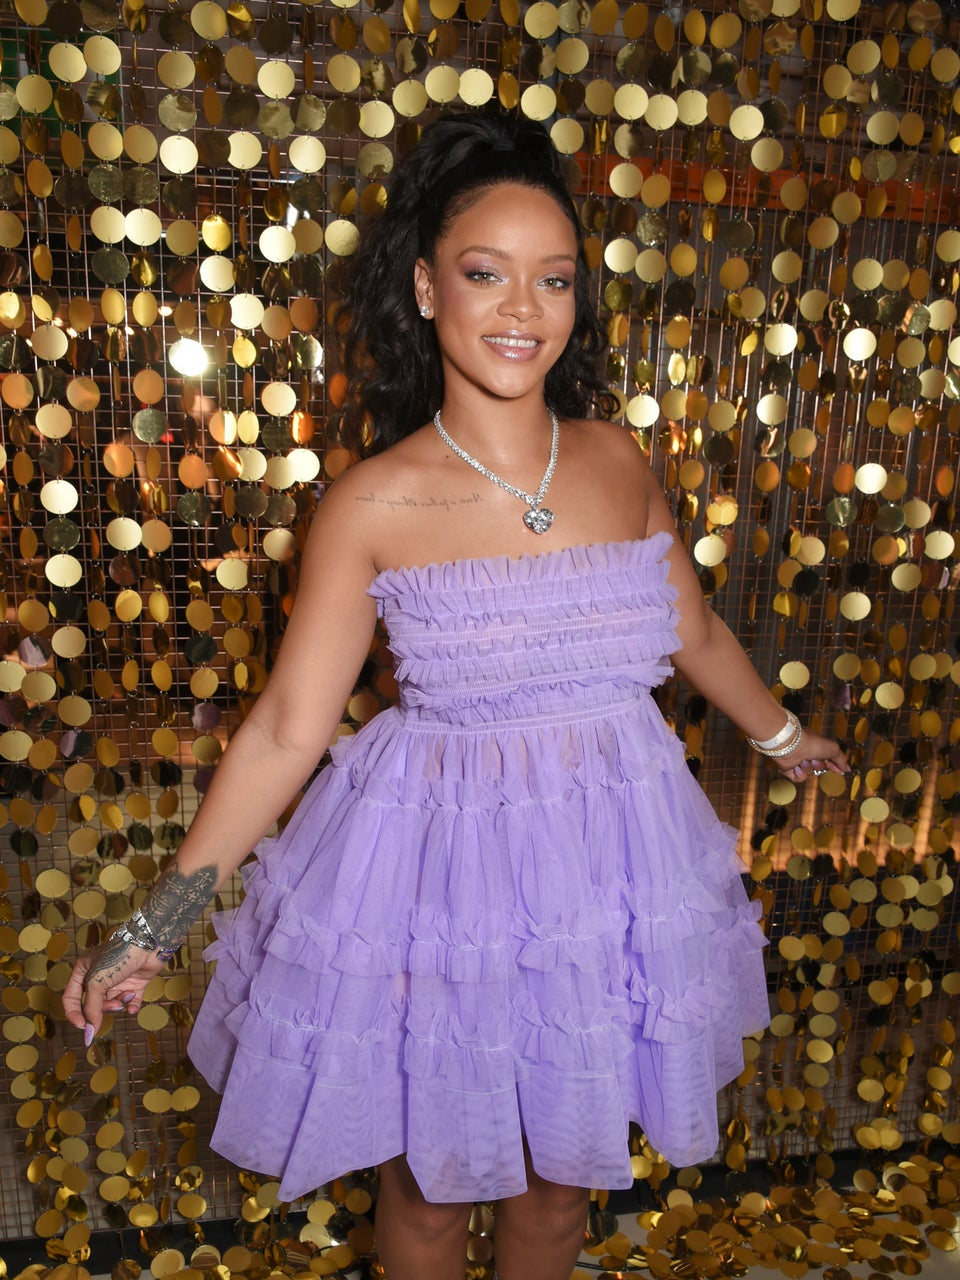 Fenty Beauty Has Raked Up $72 Million in EMV in Just One Month, All Hail Queen Rihanna